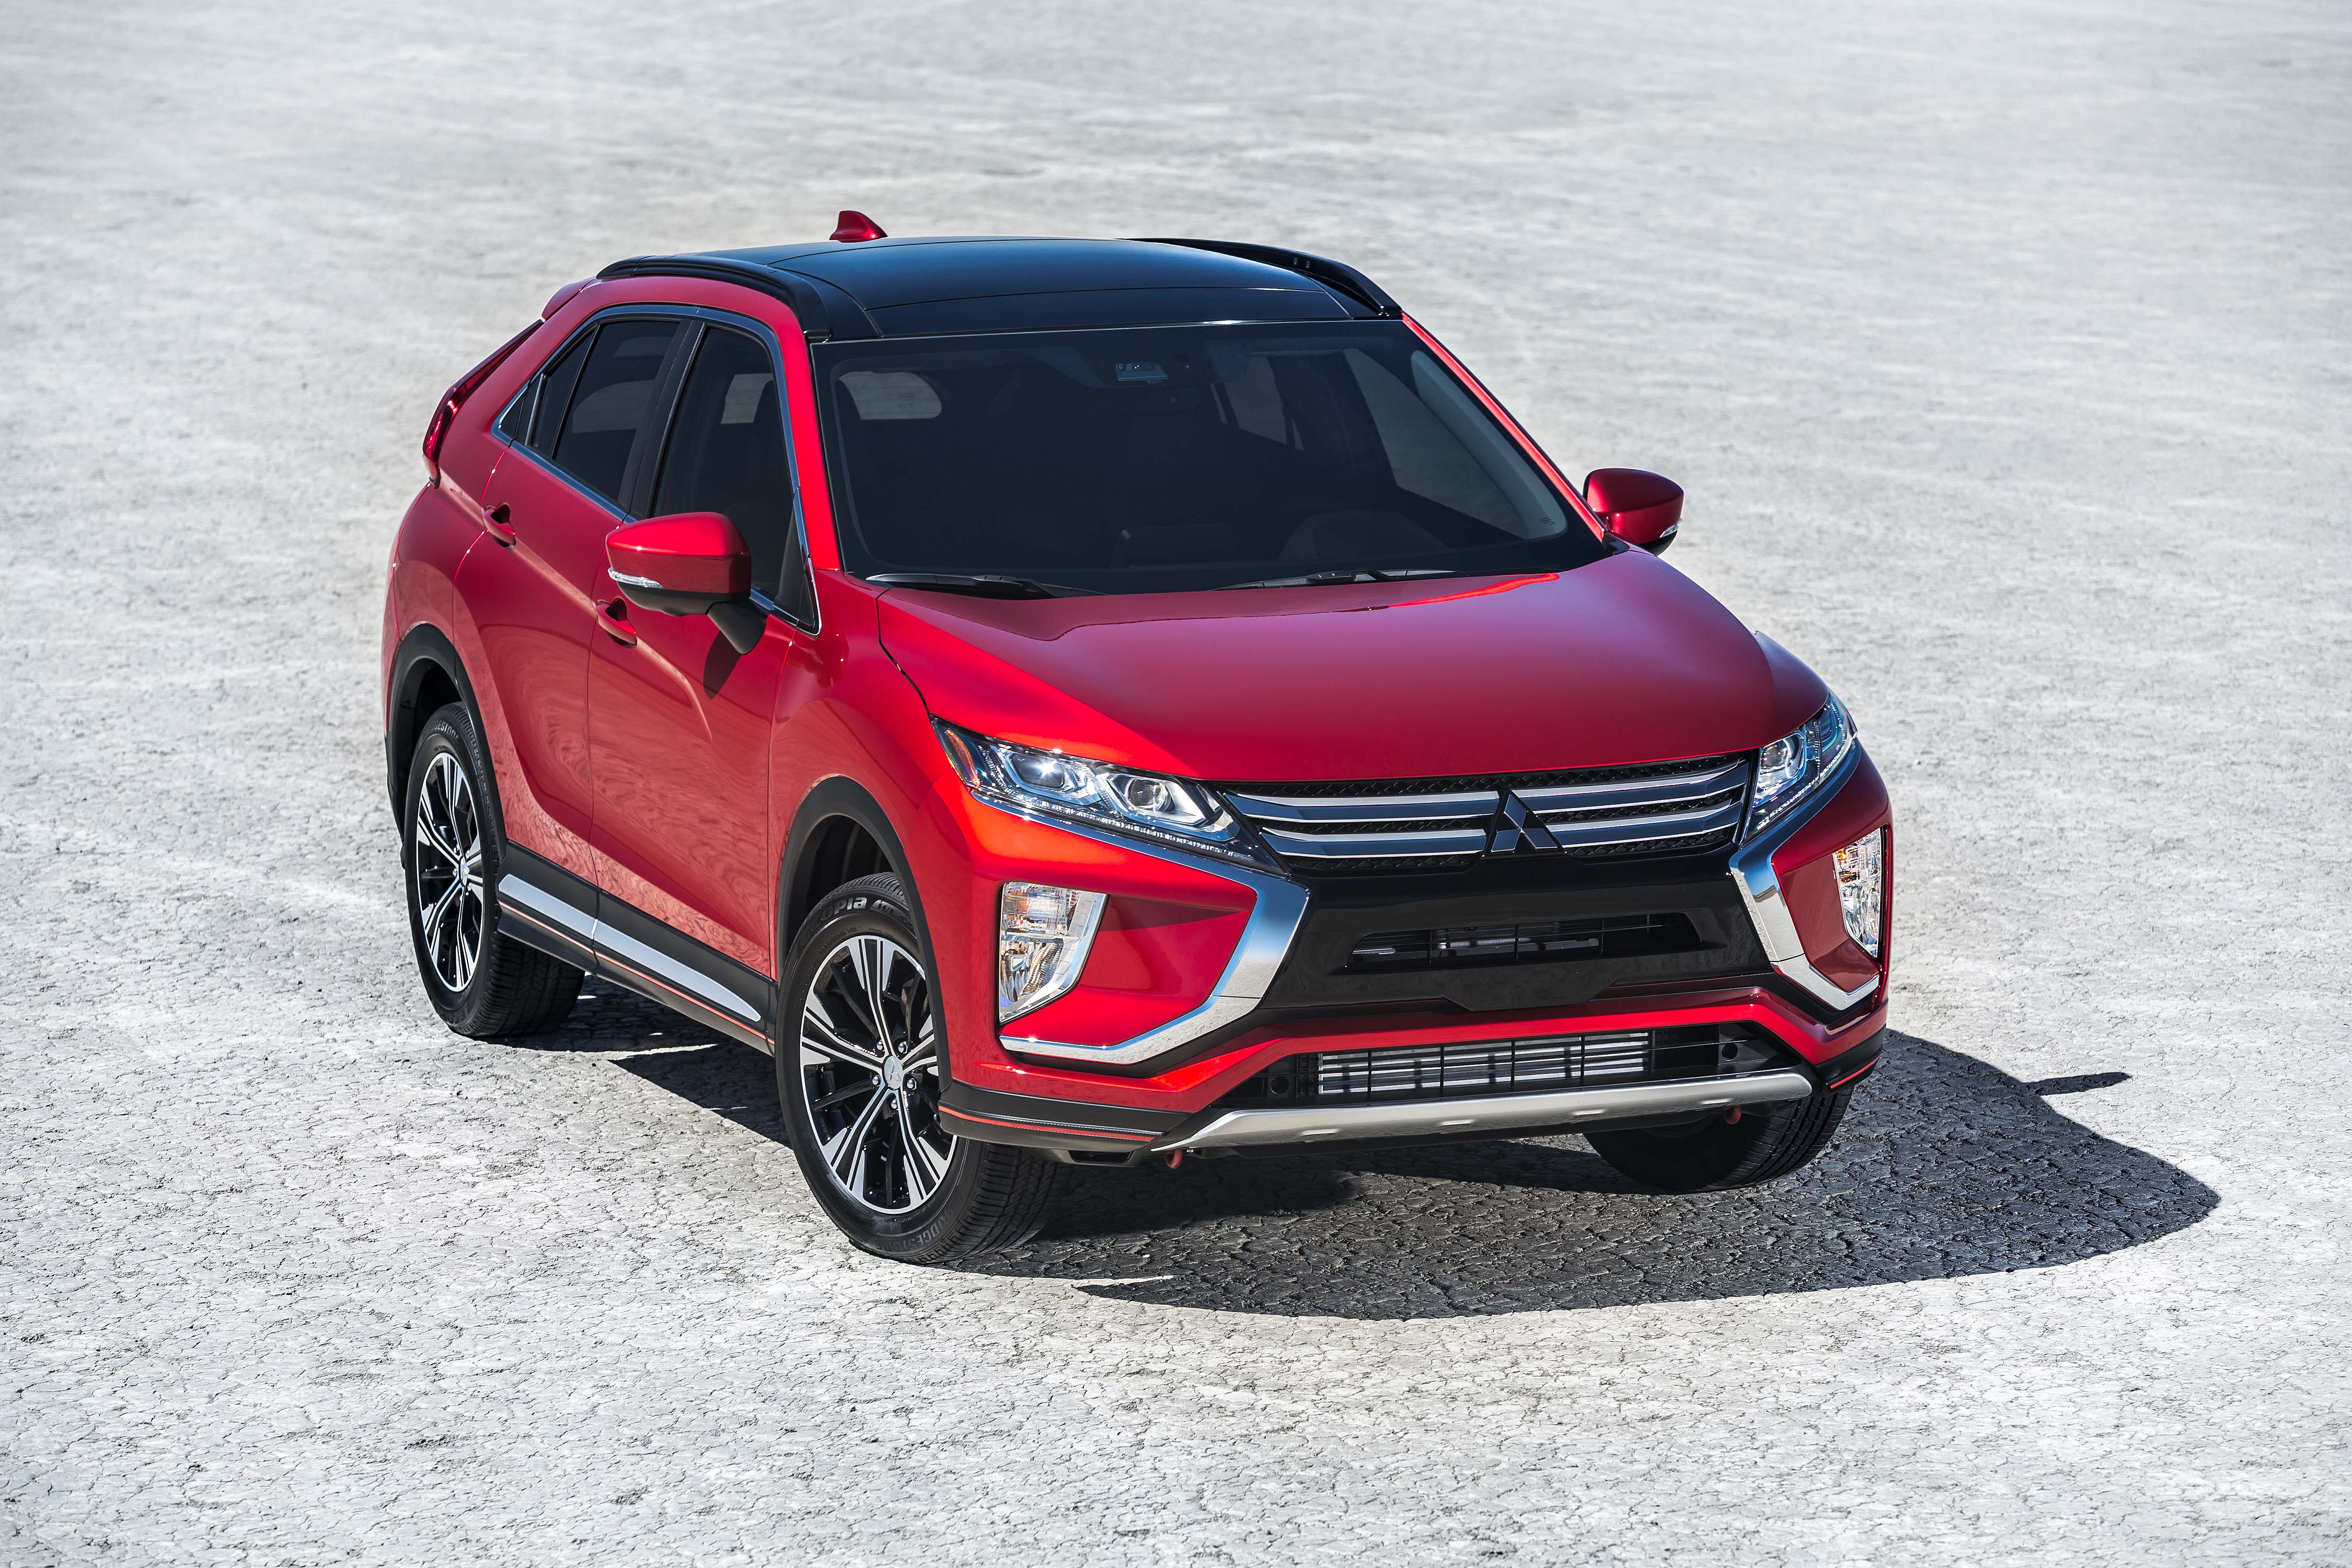 2018 mitsubishi eclipse cross automotive rhythms. Black Bedroom Furniture Sets. Home Design Ideas